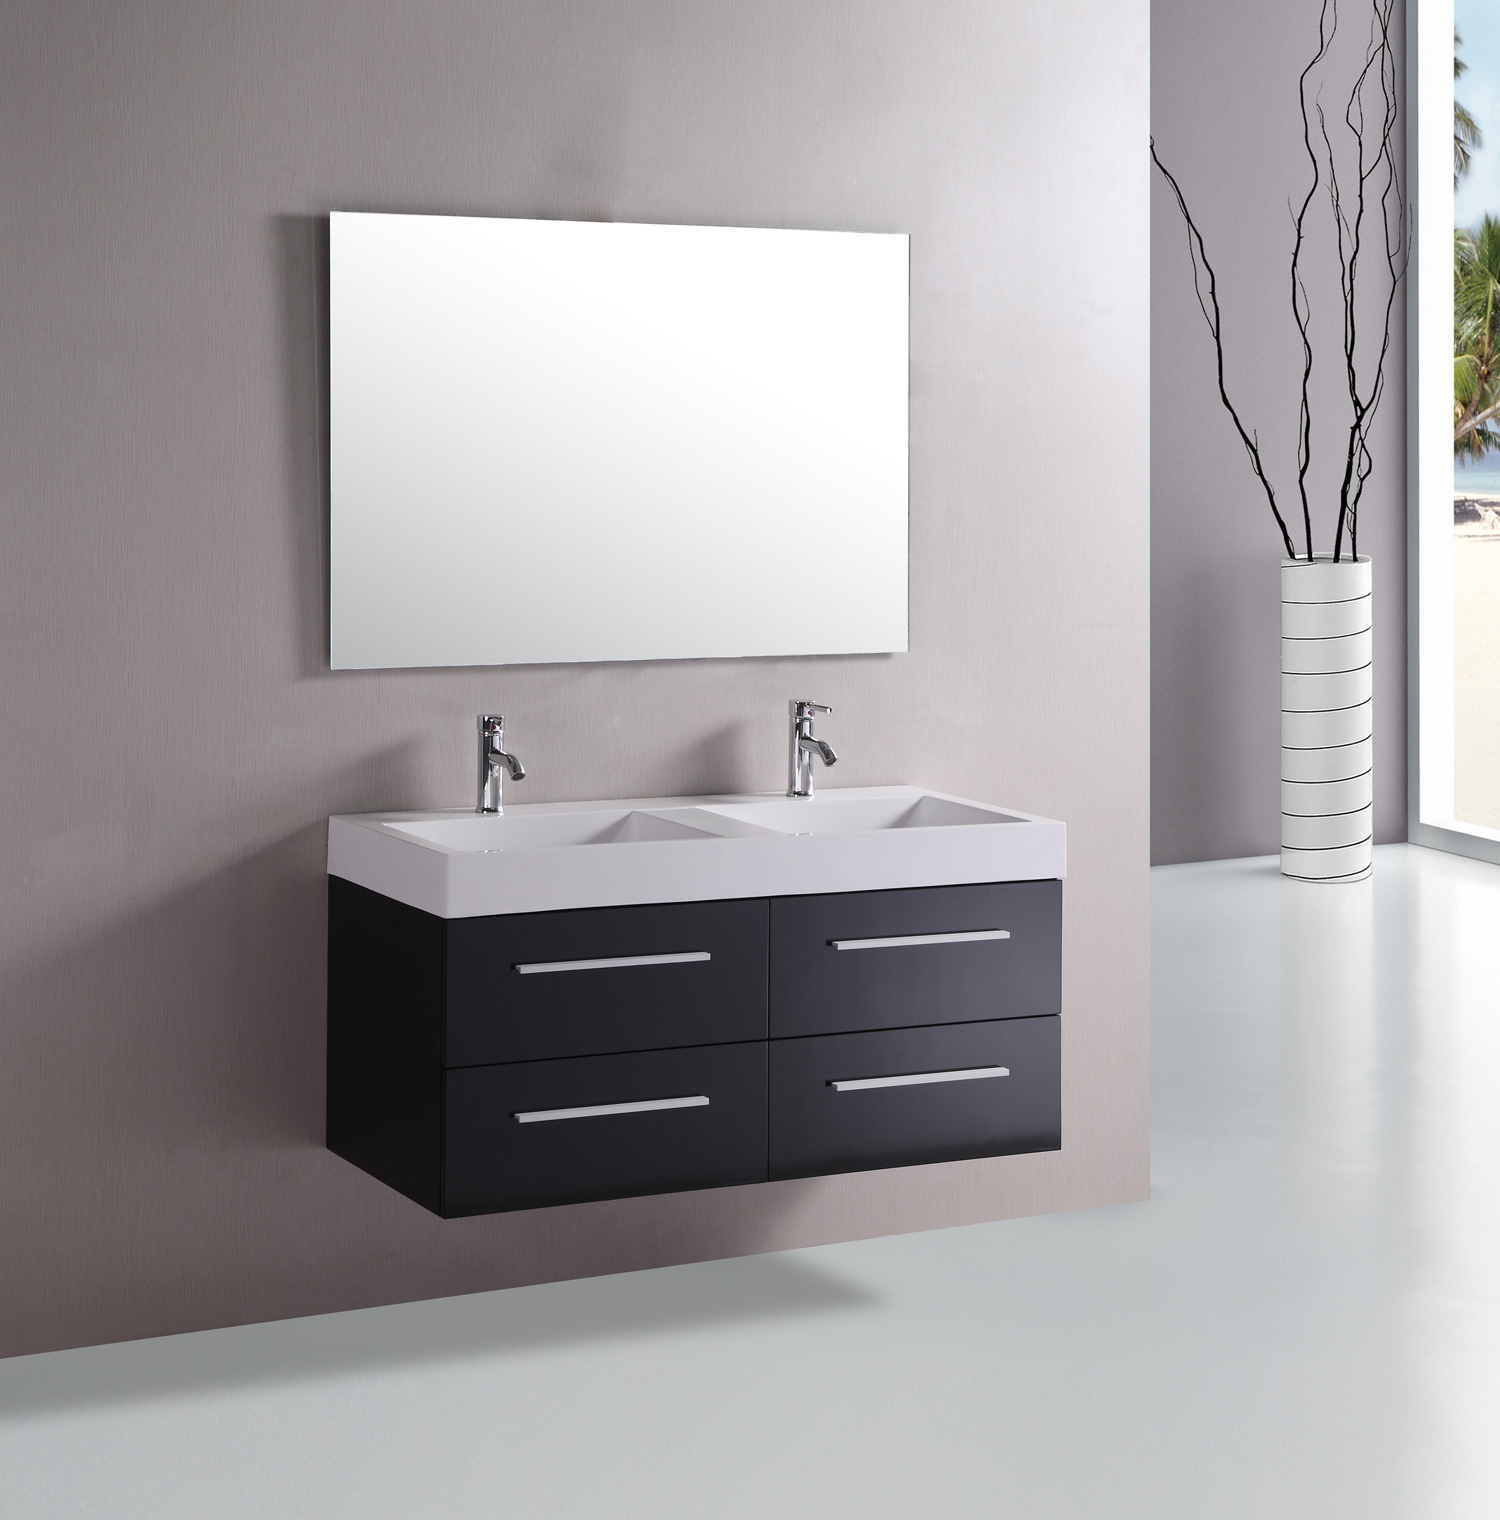 36 Inch Bathroom Vanity Floating